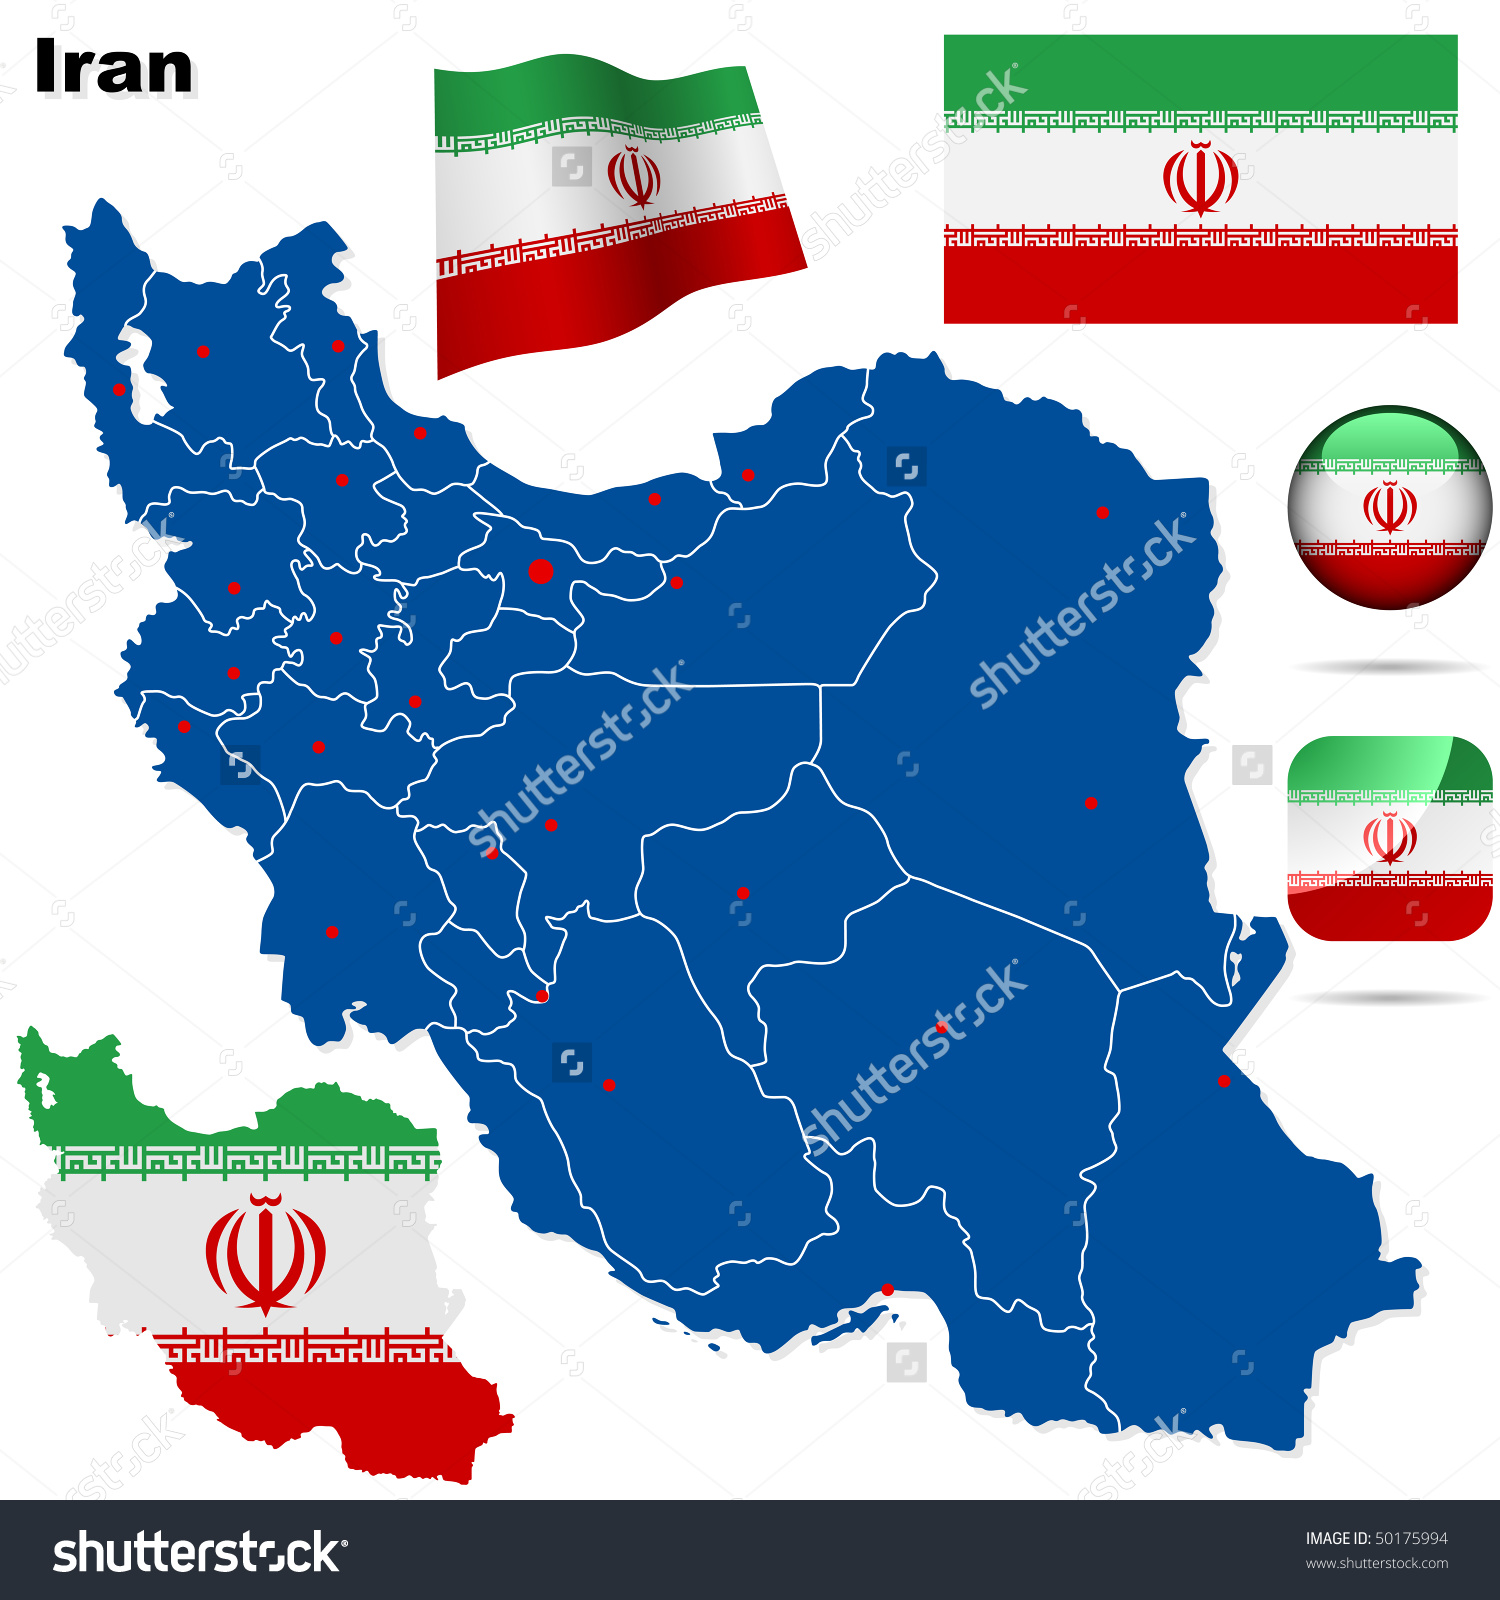 Islamic Republic Of Iran Stock Photos, Images, & Pictures.